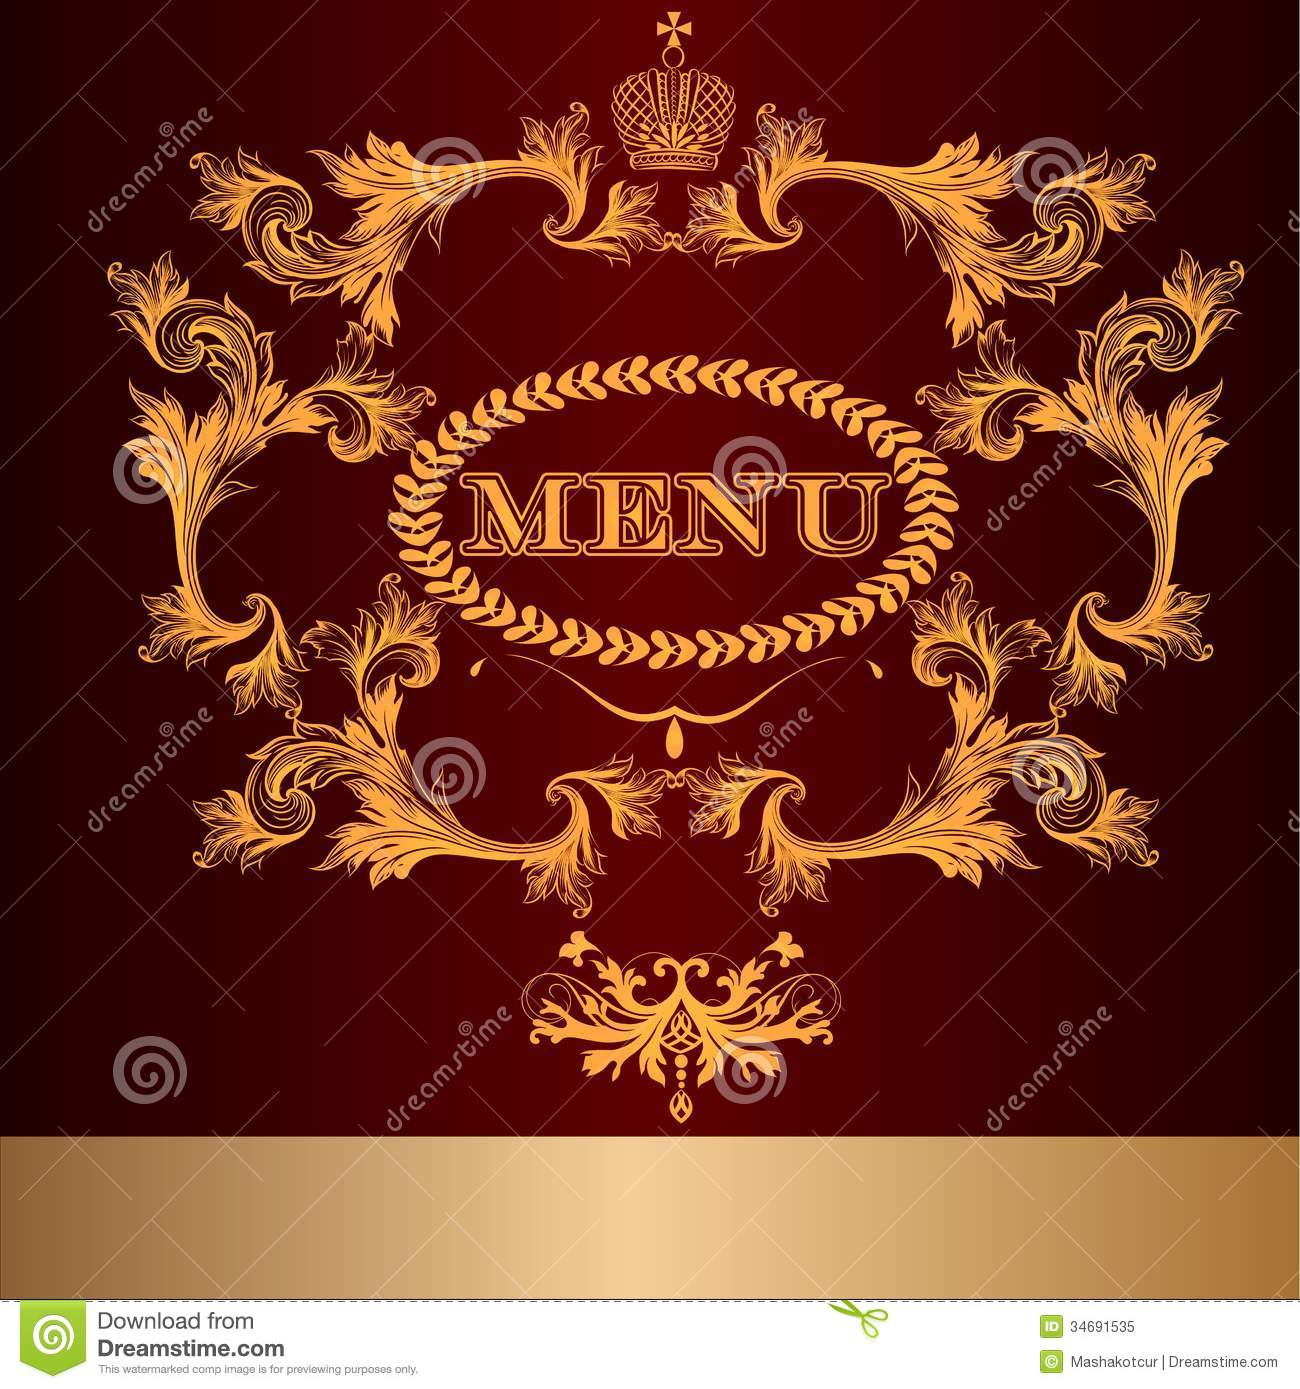 Menu Design In Luxury Royal Style Stock Vector - Illustration of ...